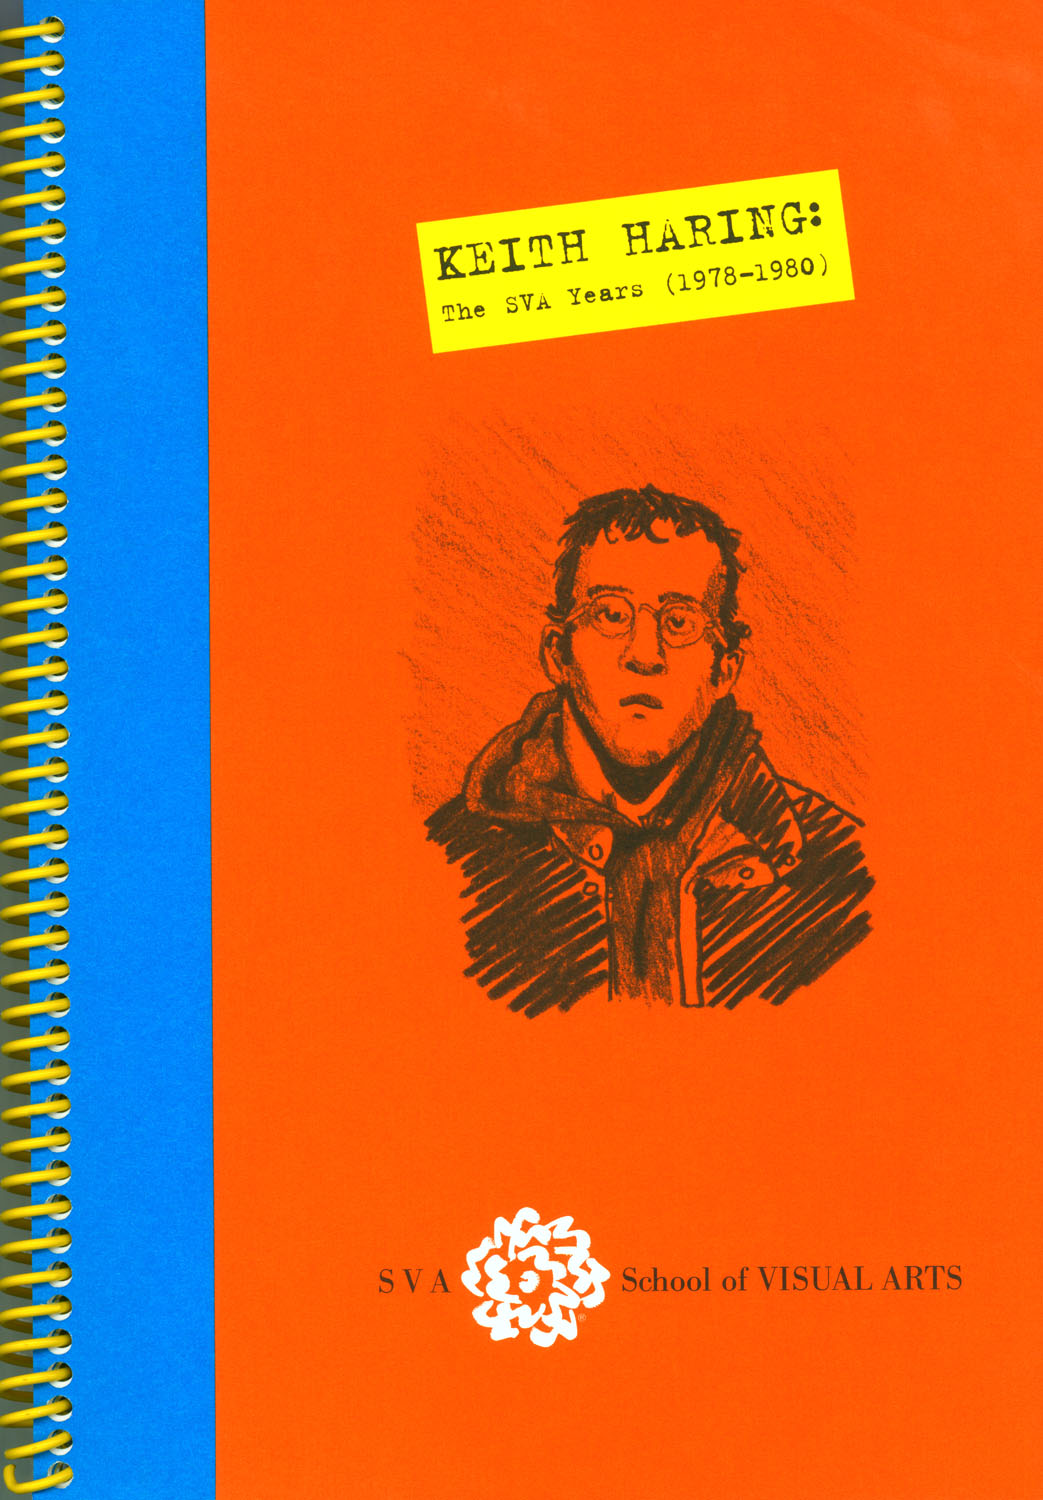 Photograph of a red, yellow and blue composition notebook. On the cover is a pencil drawing of Keith Haring.